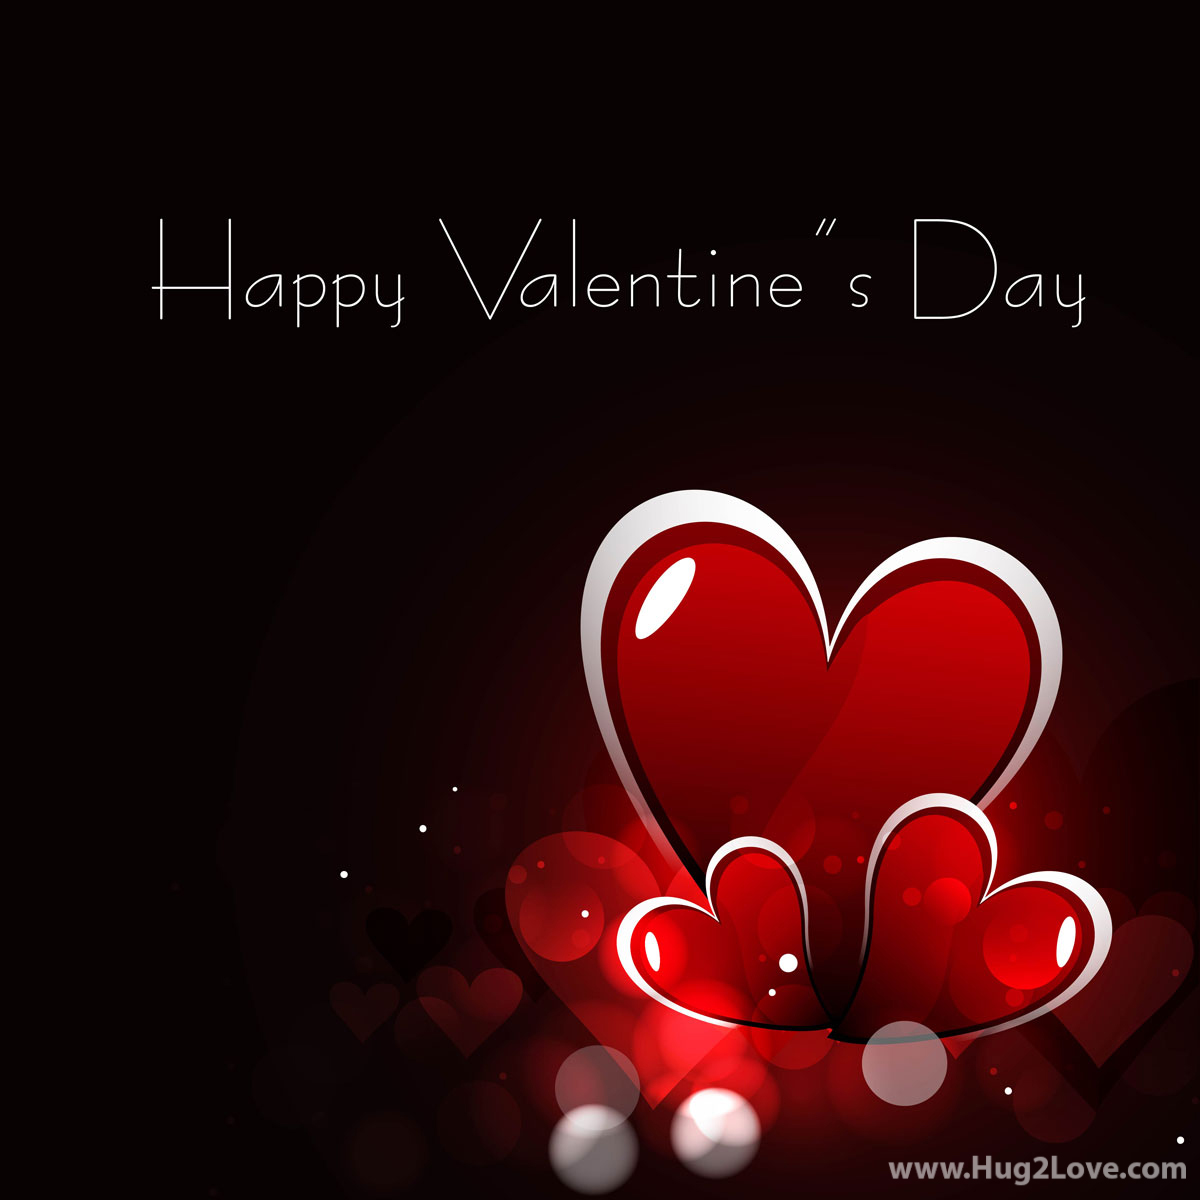 Top 100 Happy Valentine's Day Images & Wallpapers 2017